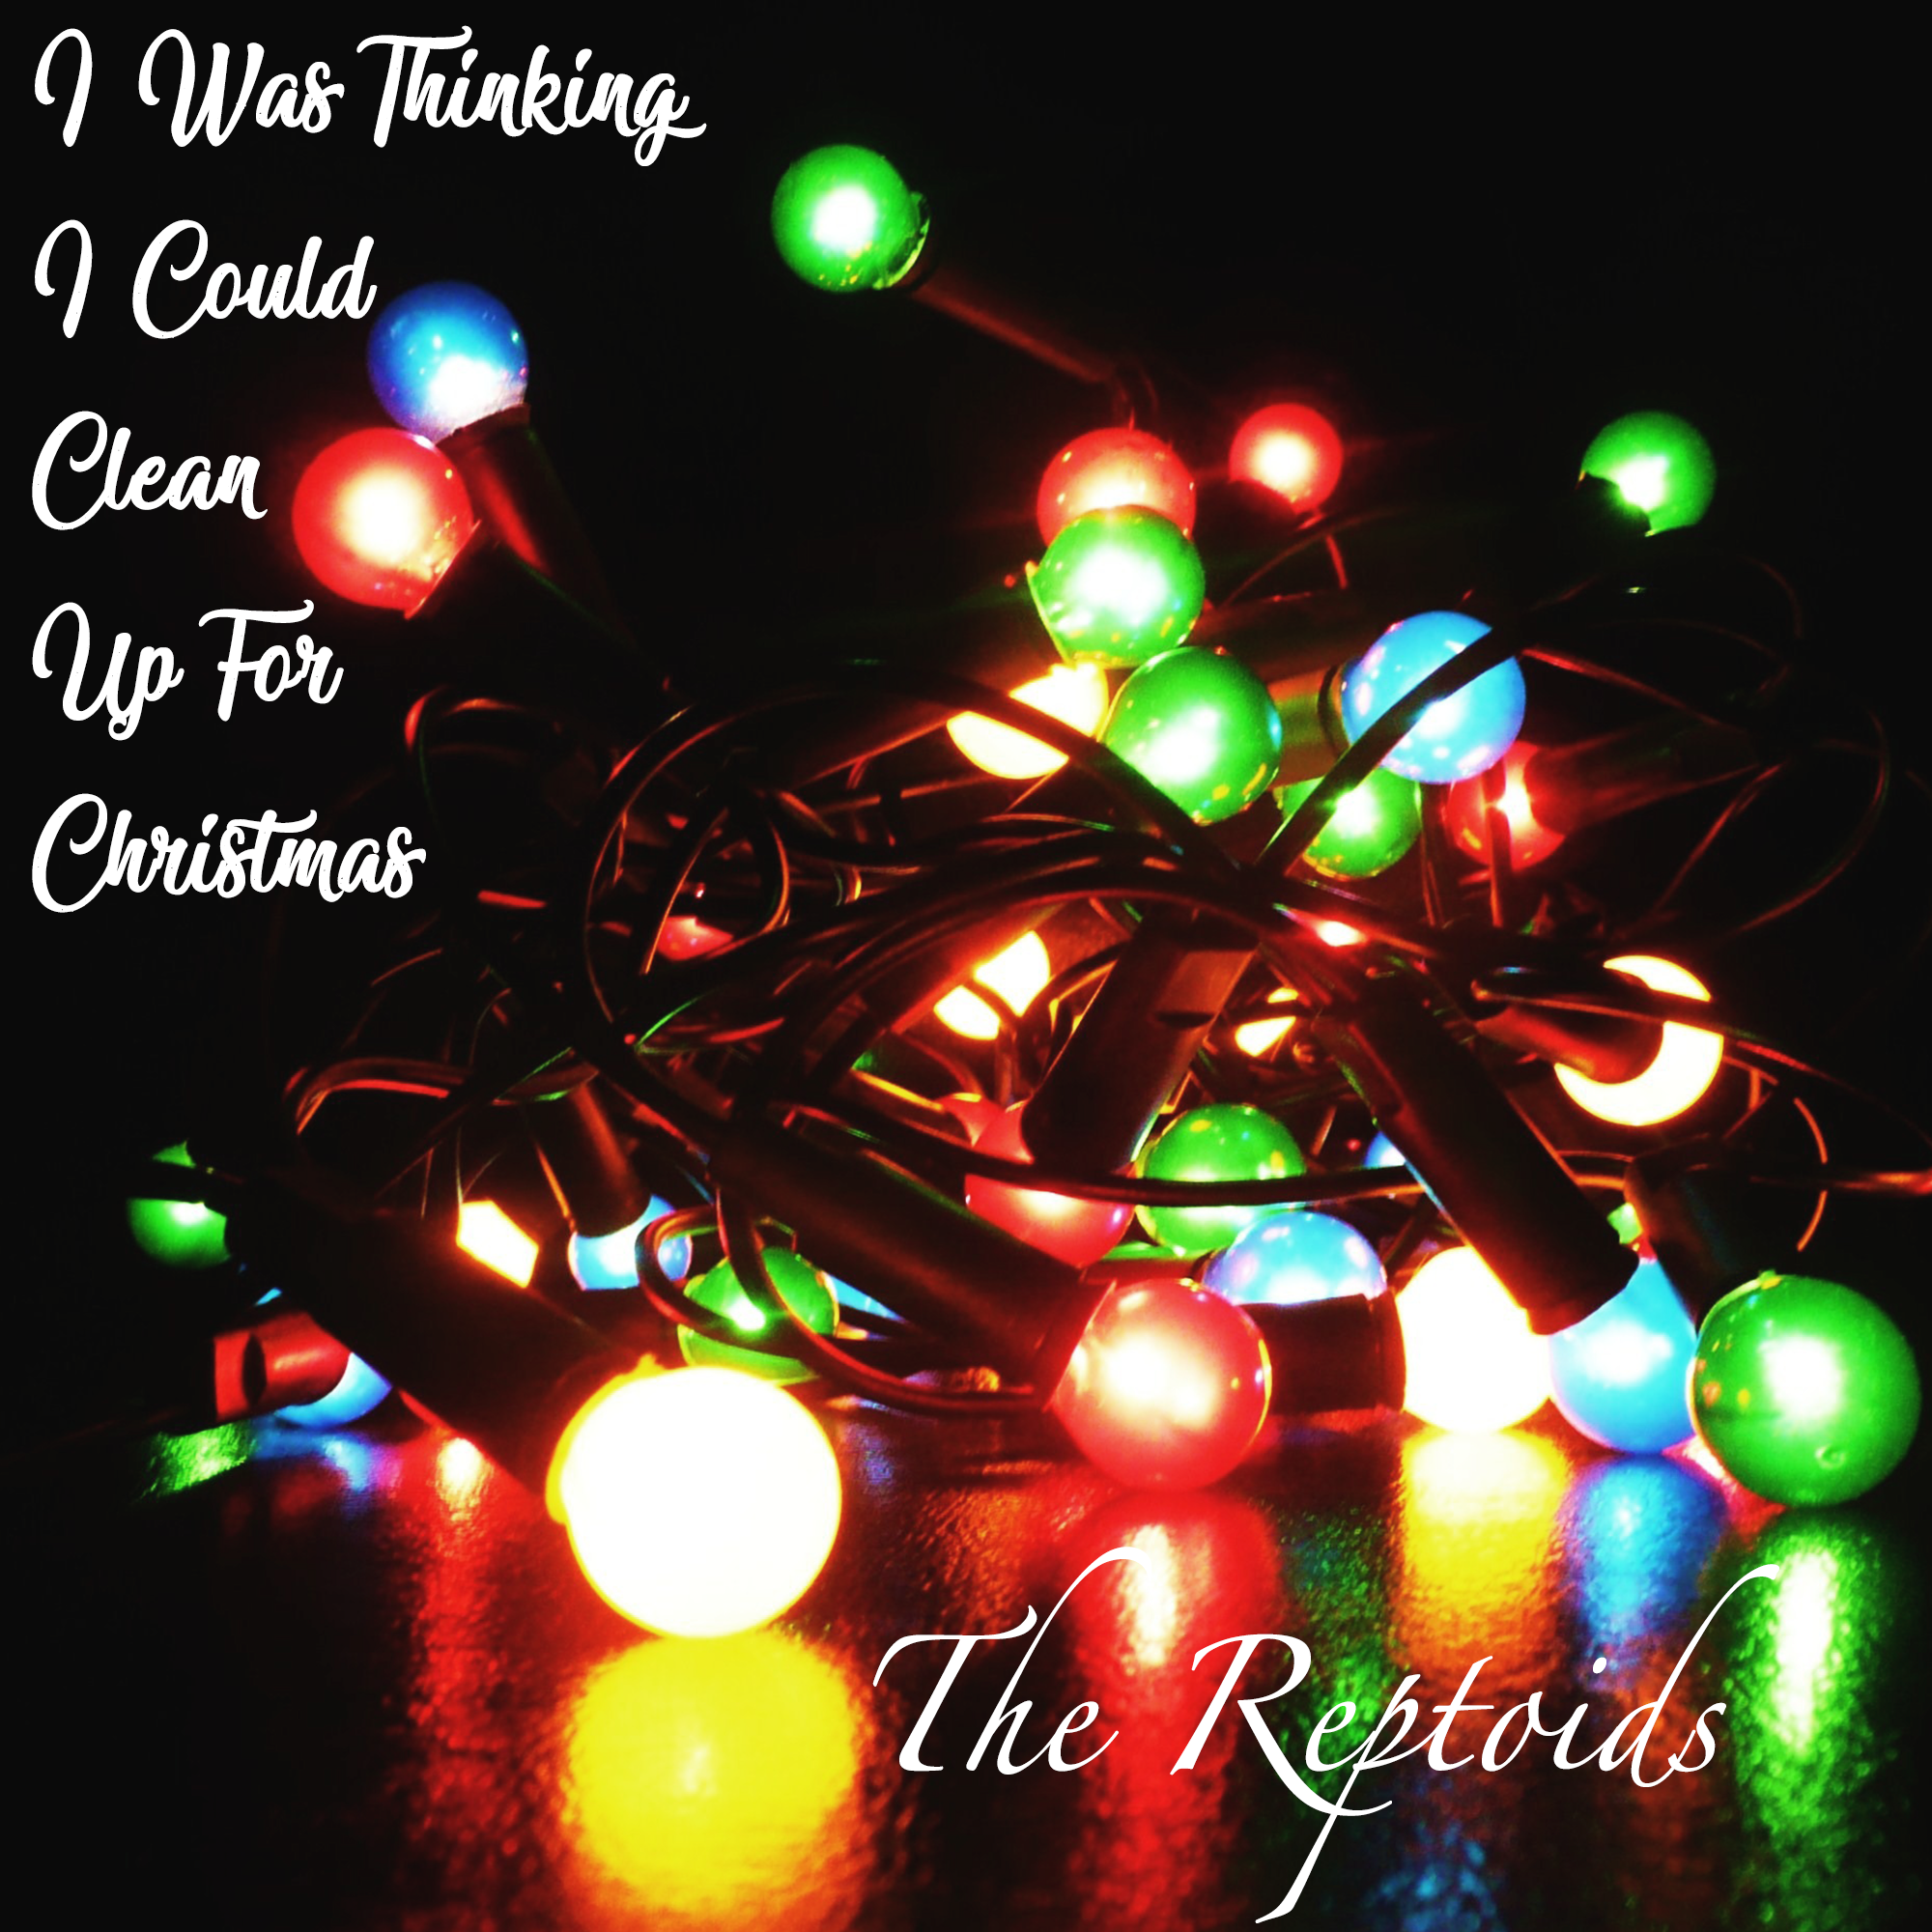 I Was Thinking I Could Clean Up For Christmas Cover Art